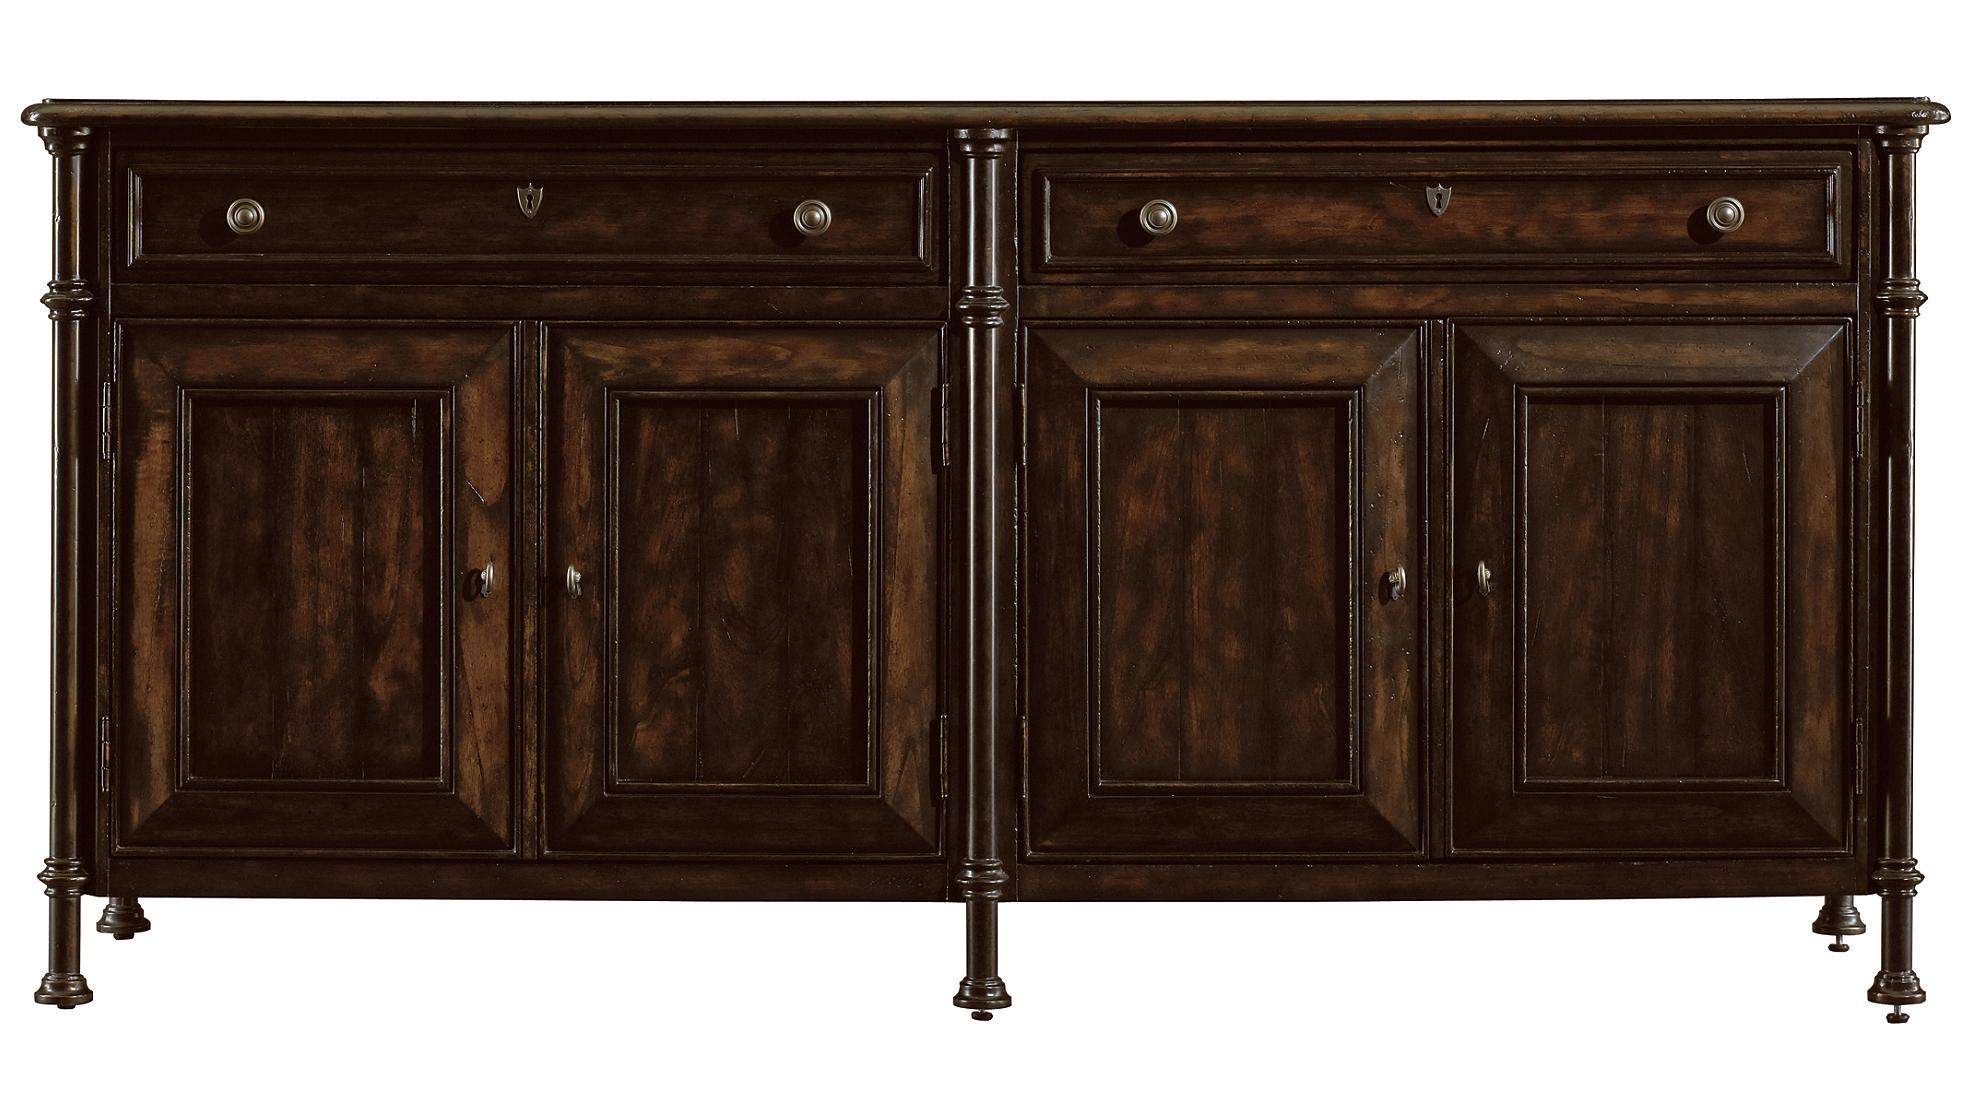 Stanley Furniture European Farmhouse Campagne Cabinet - Item Number: 018-11-05